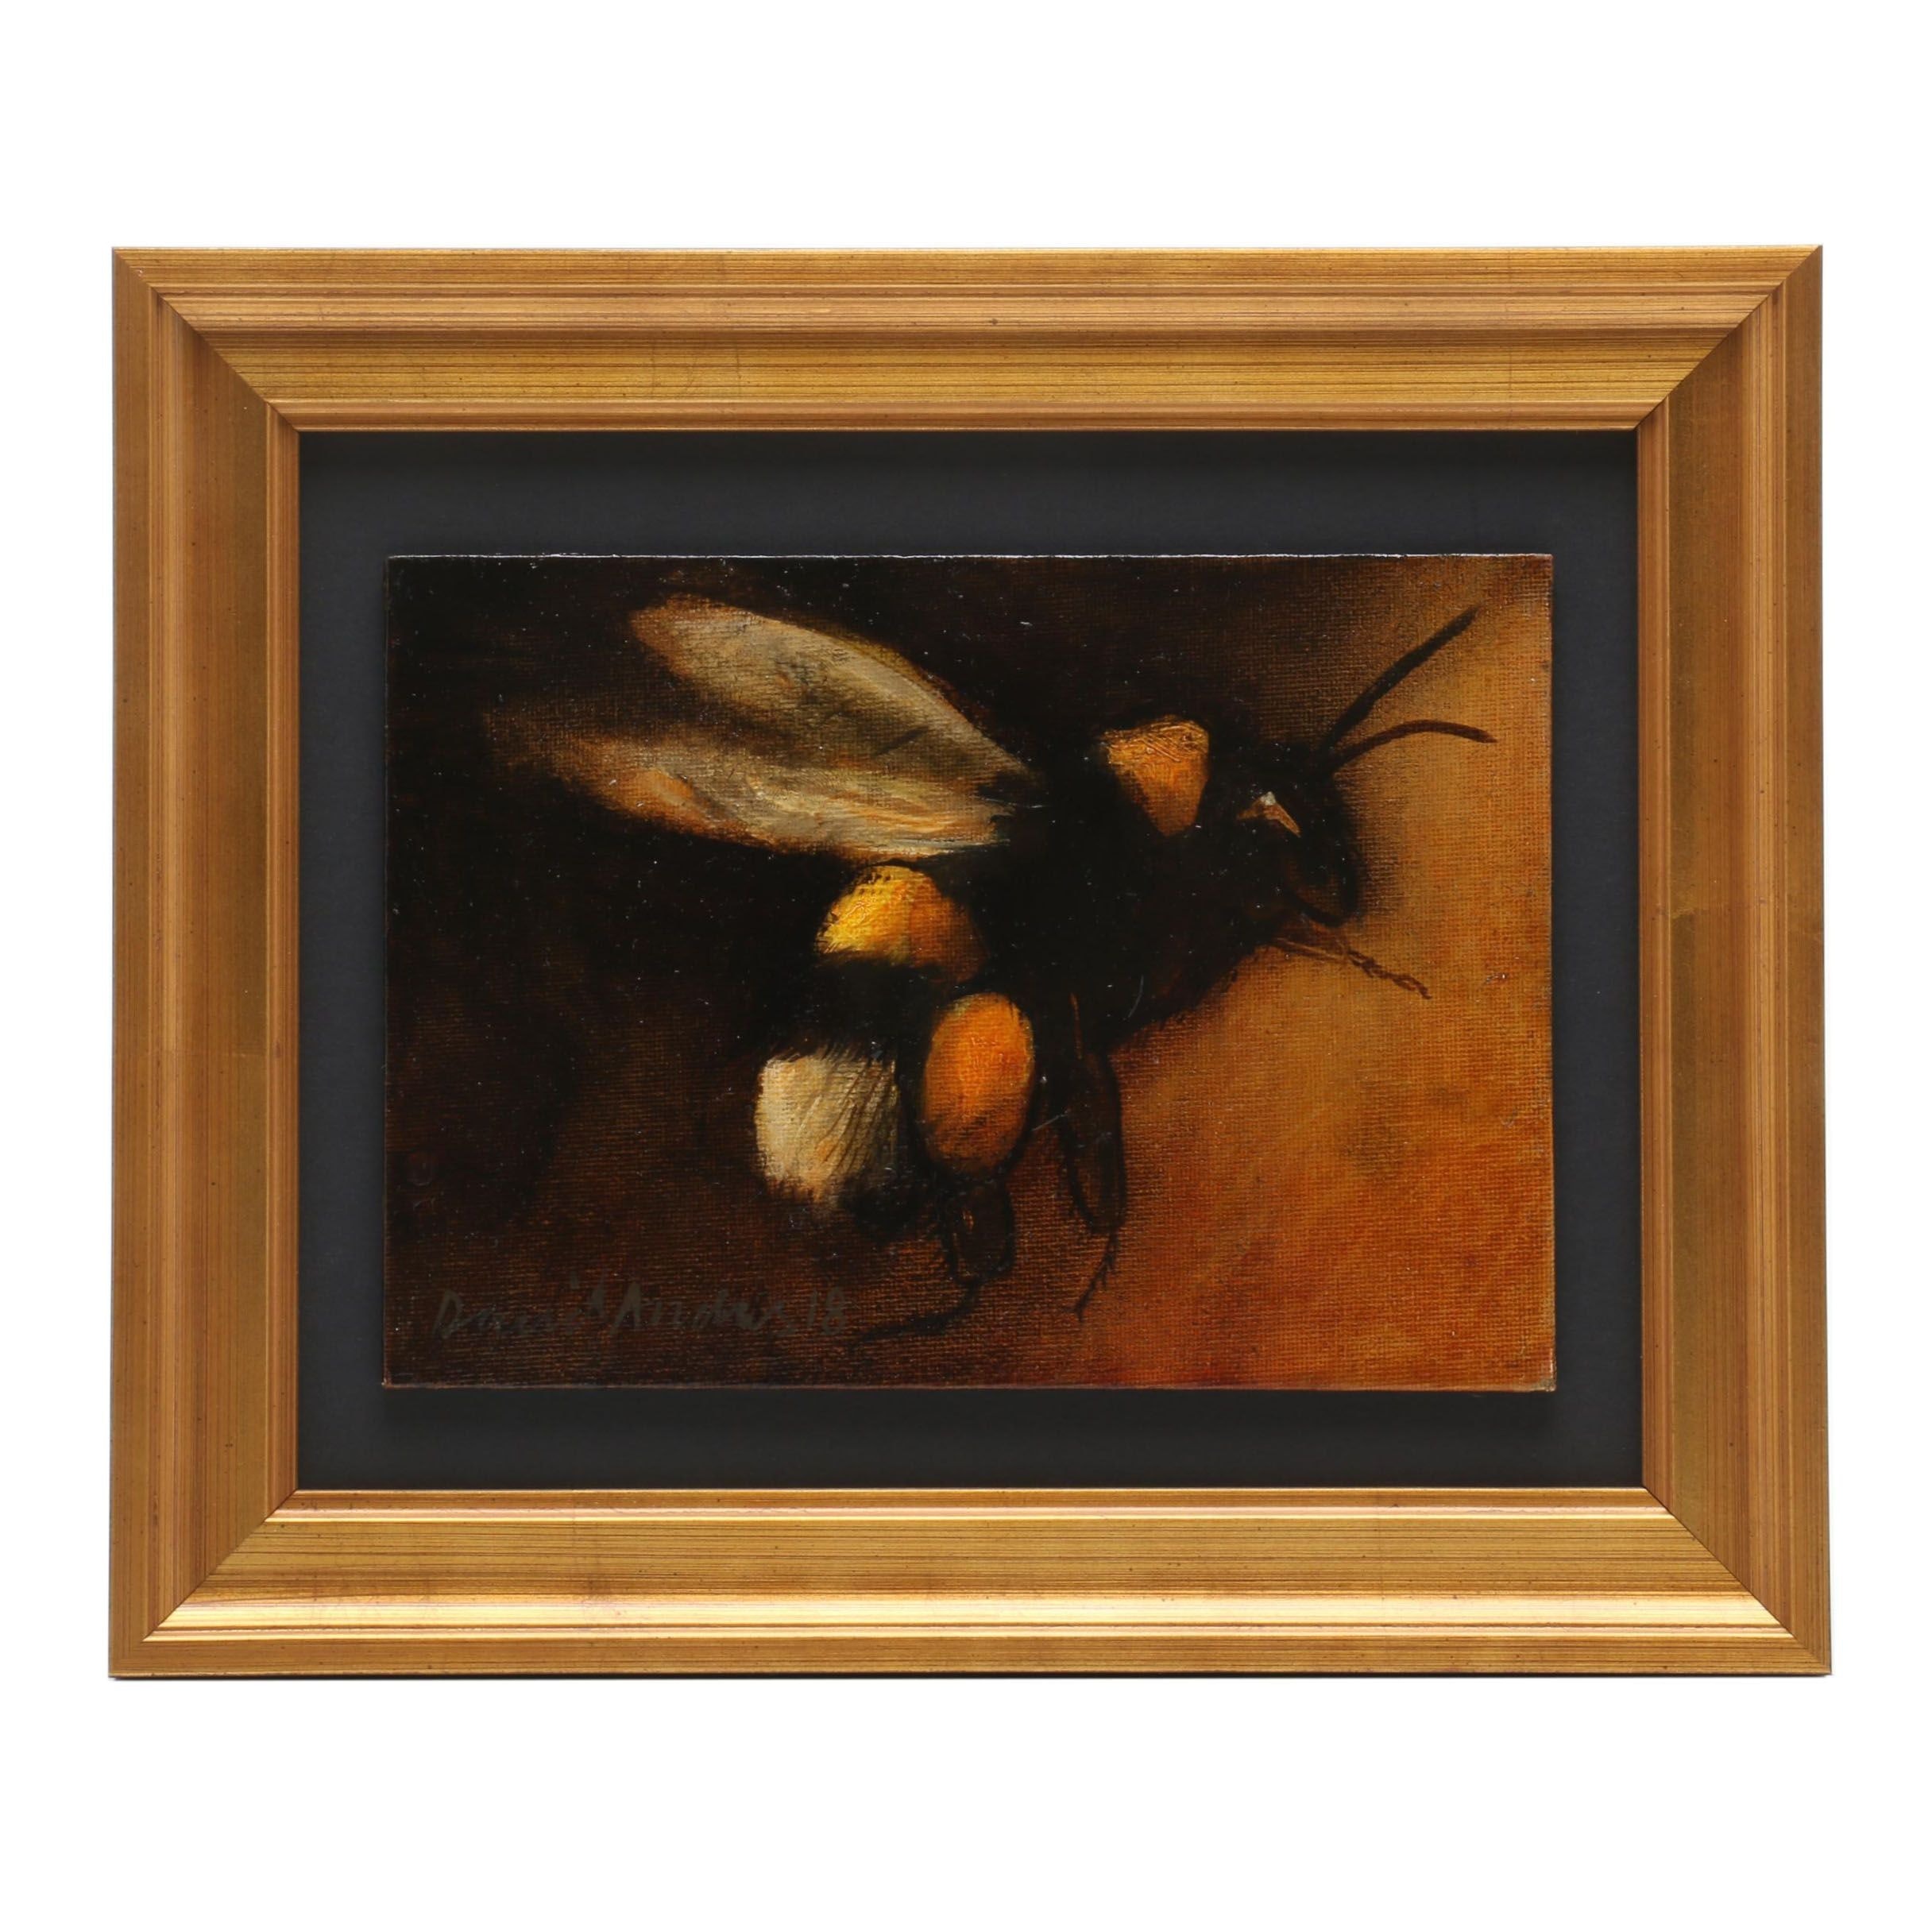 David Andrews Oil Painting of Bumble Bee